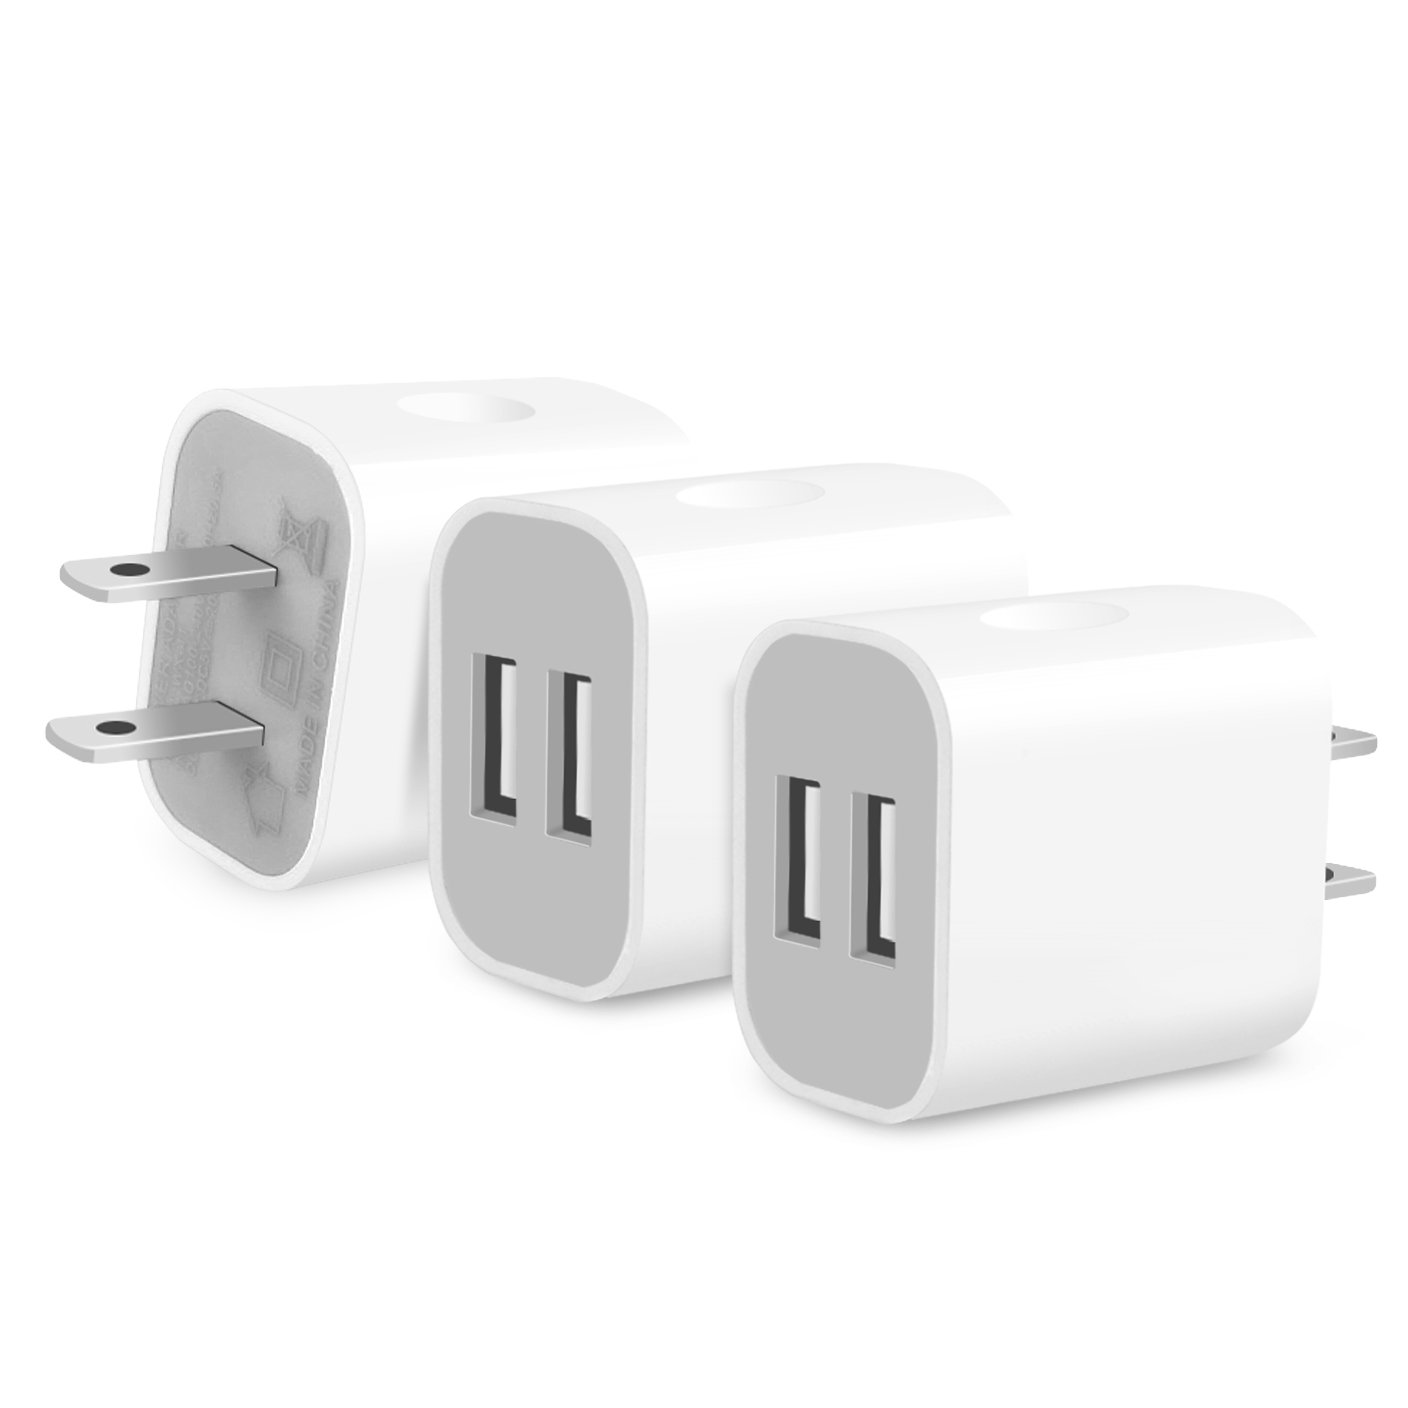 Frerush 3 Pack 2A 5V Universal Color Dual USB Port AC/DC Wall Travel Home Charger Power Adapter Plug for HTC, LG, Galaxy S Series, Note Series,Android Phone, iPhone 7 6s 6 Plus, iPad Air, Mini